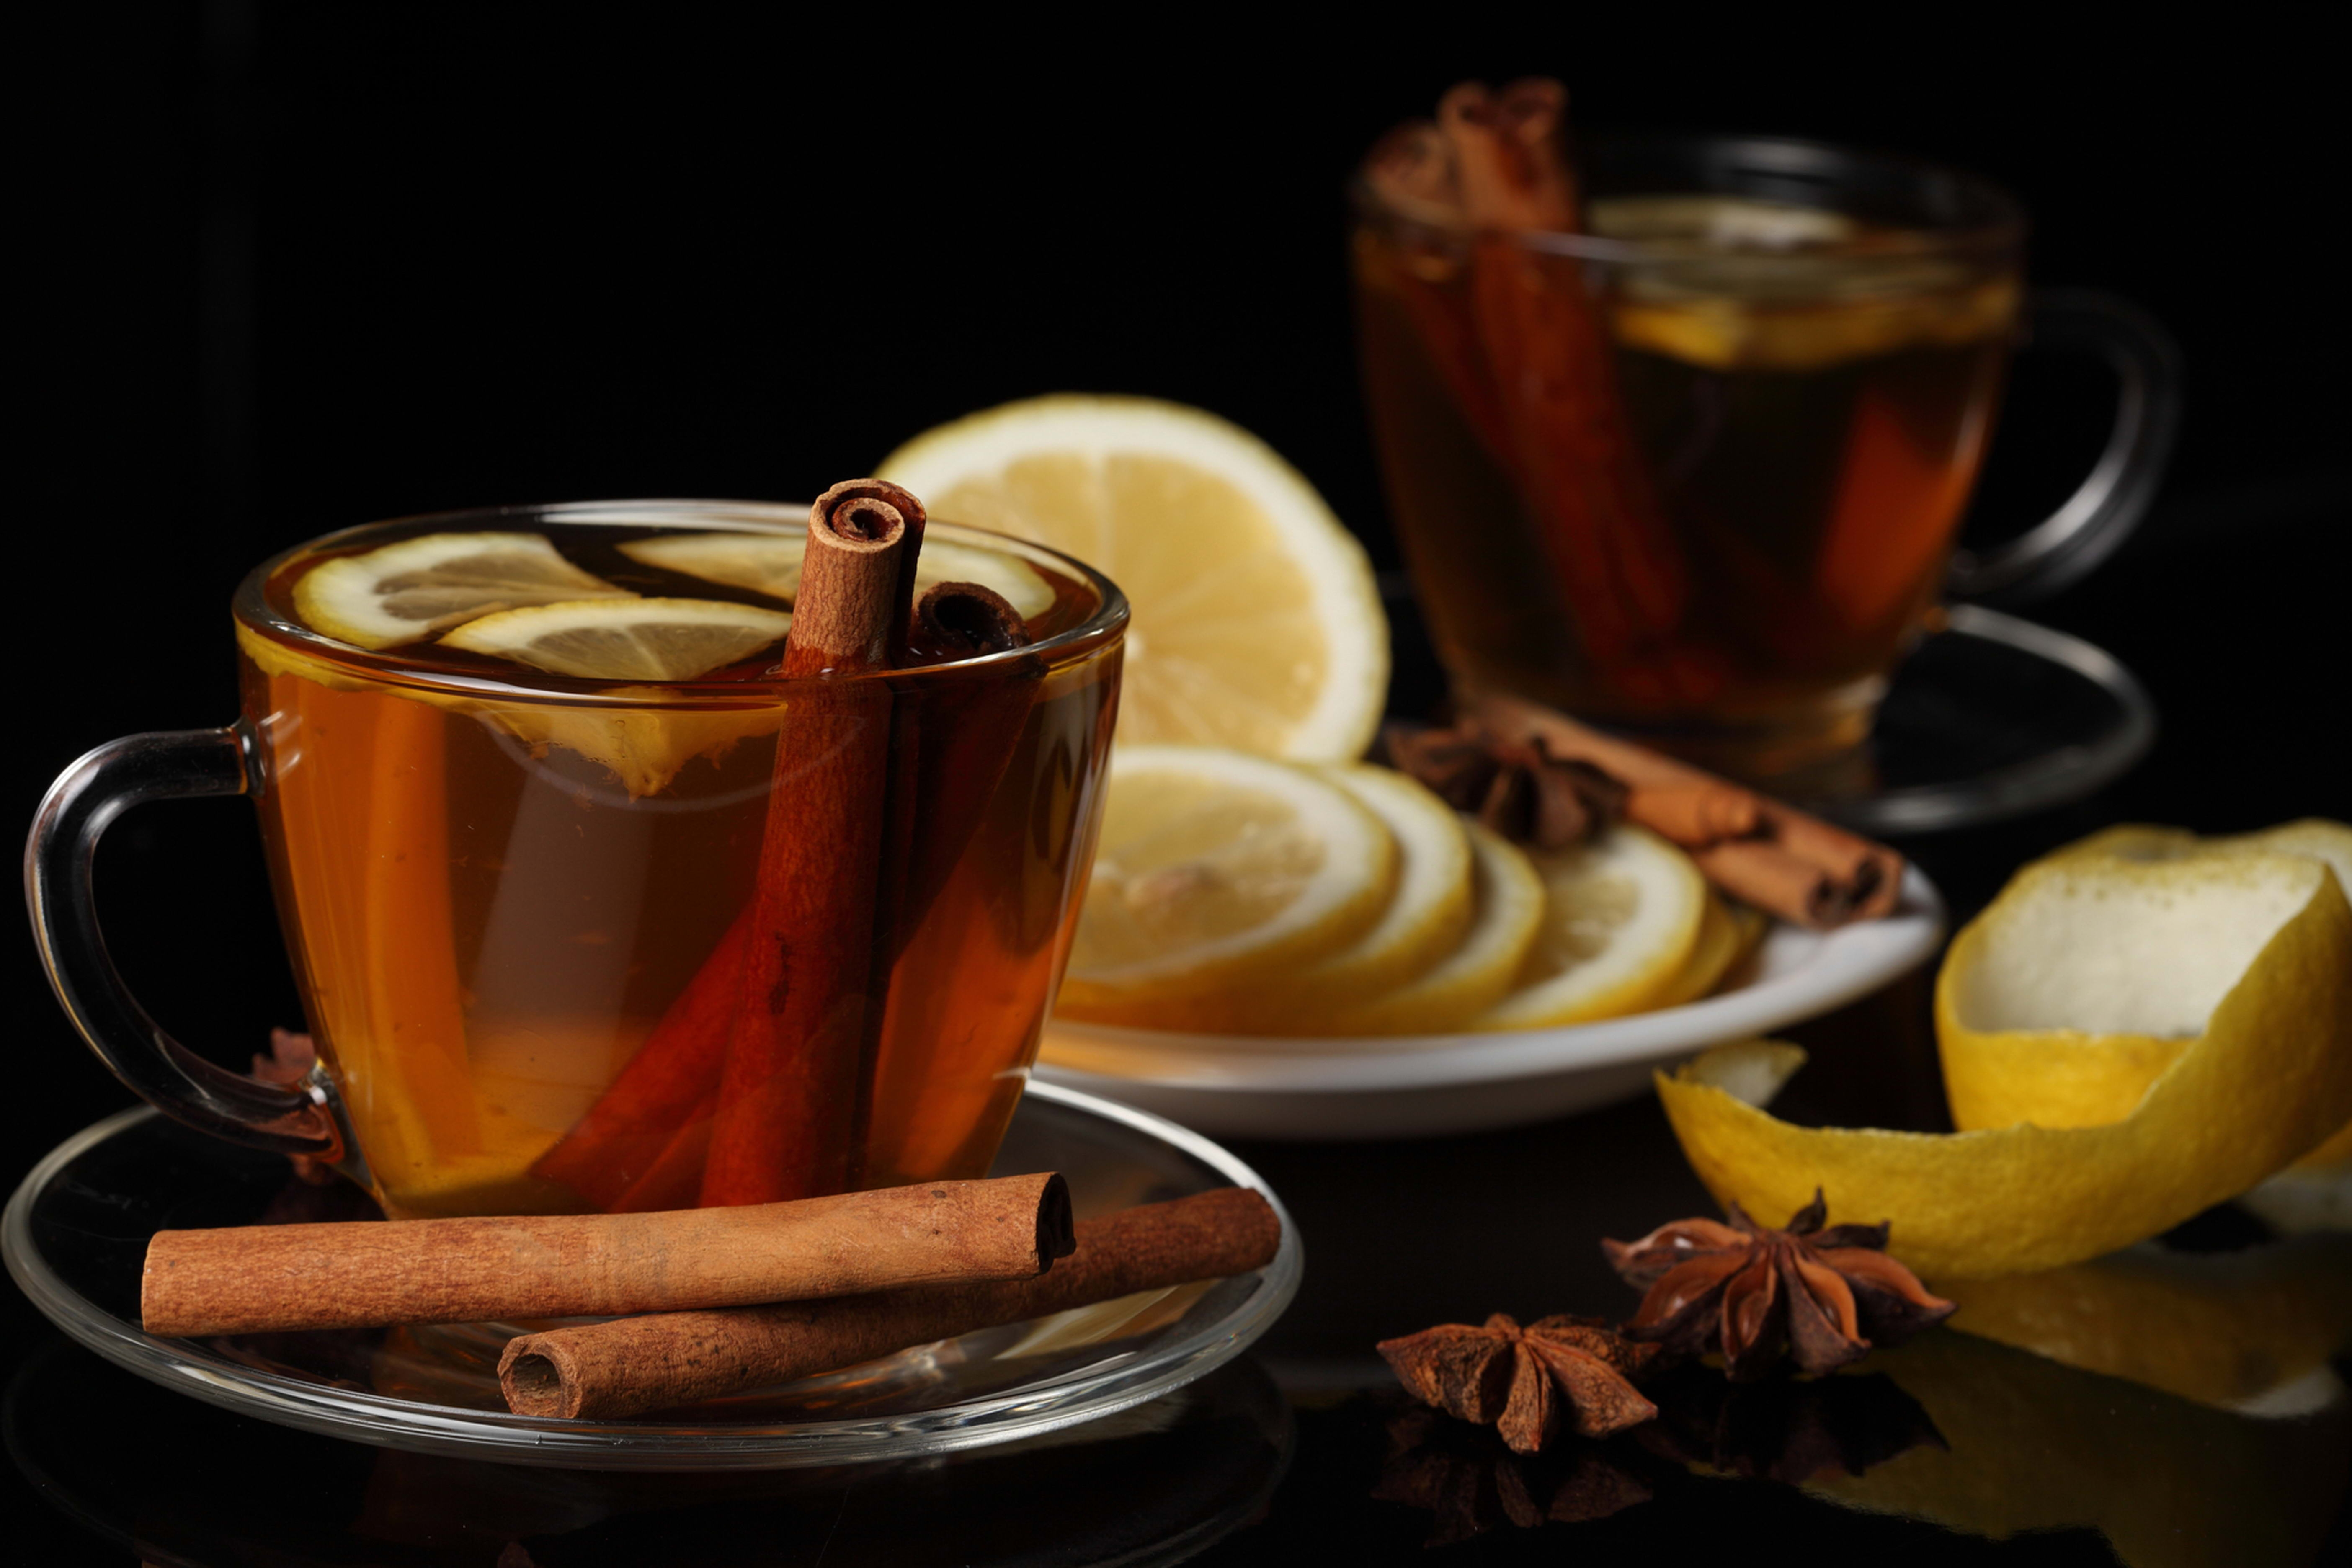 102913 download wallpaper Food, Tea, Cup, Lemon, Black Background, Cinnamon screensavers and pictures for free